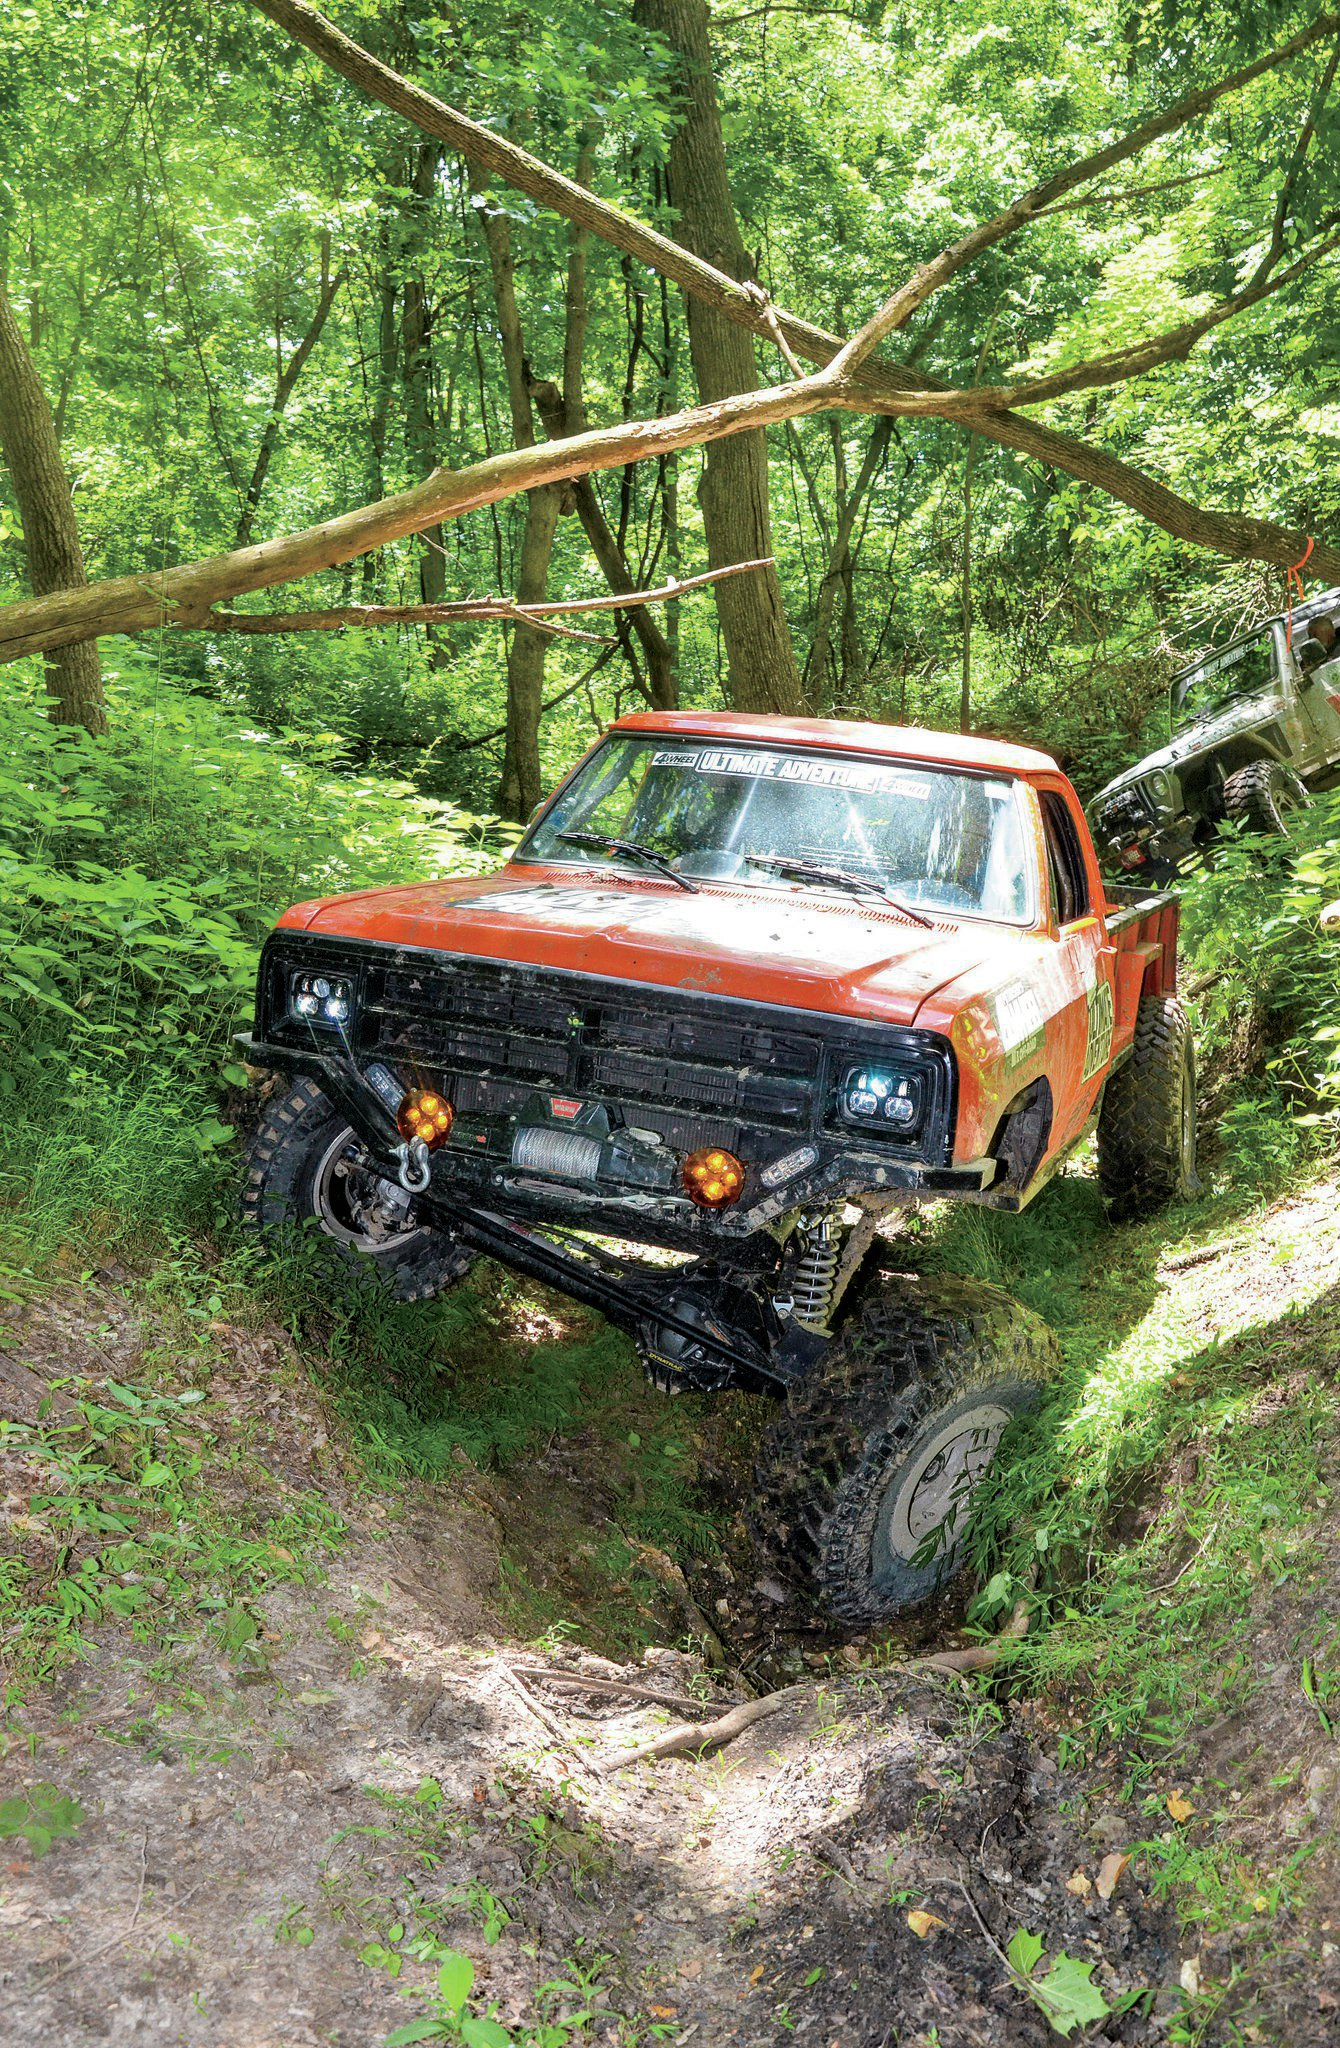 The next obstacle on the Atlas Trail, called Bad Dog, began with a twisty muddy wash. The Tug-Truck threads the needle below some fallen logs while getting seriously twisted up. It's big. It's orange. It's the Tug-Truck!